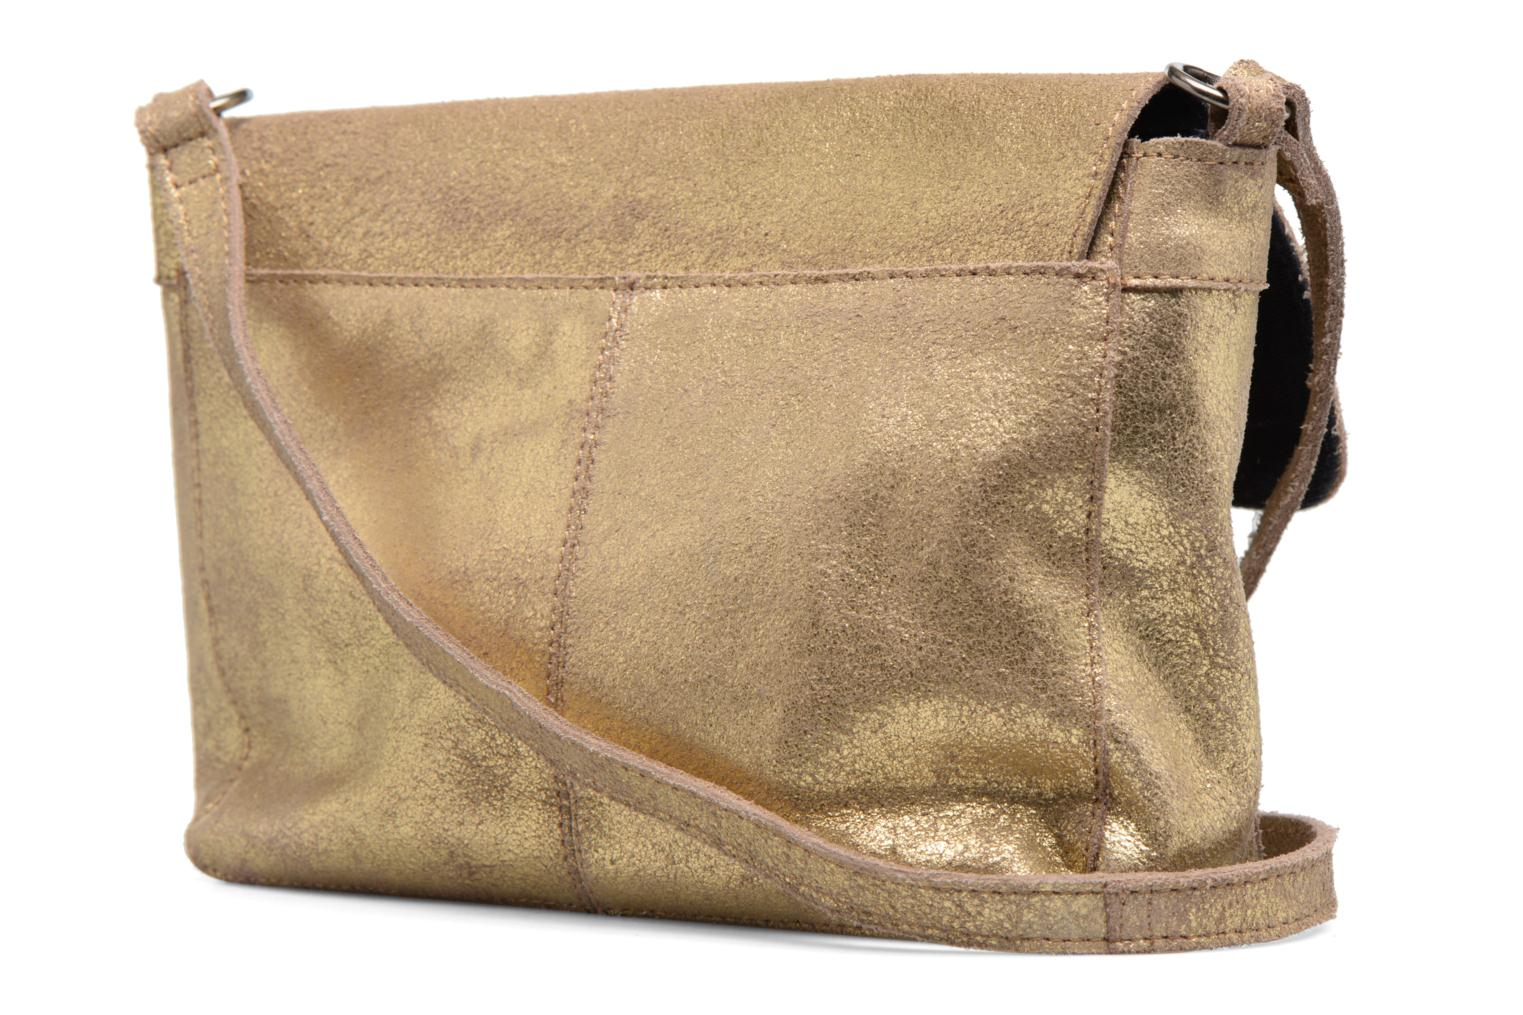 Handtassen Pieces Musta Leather Crossover bag Goud en brons rechts